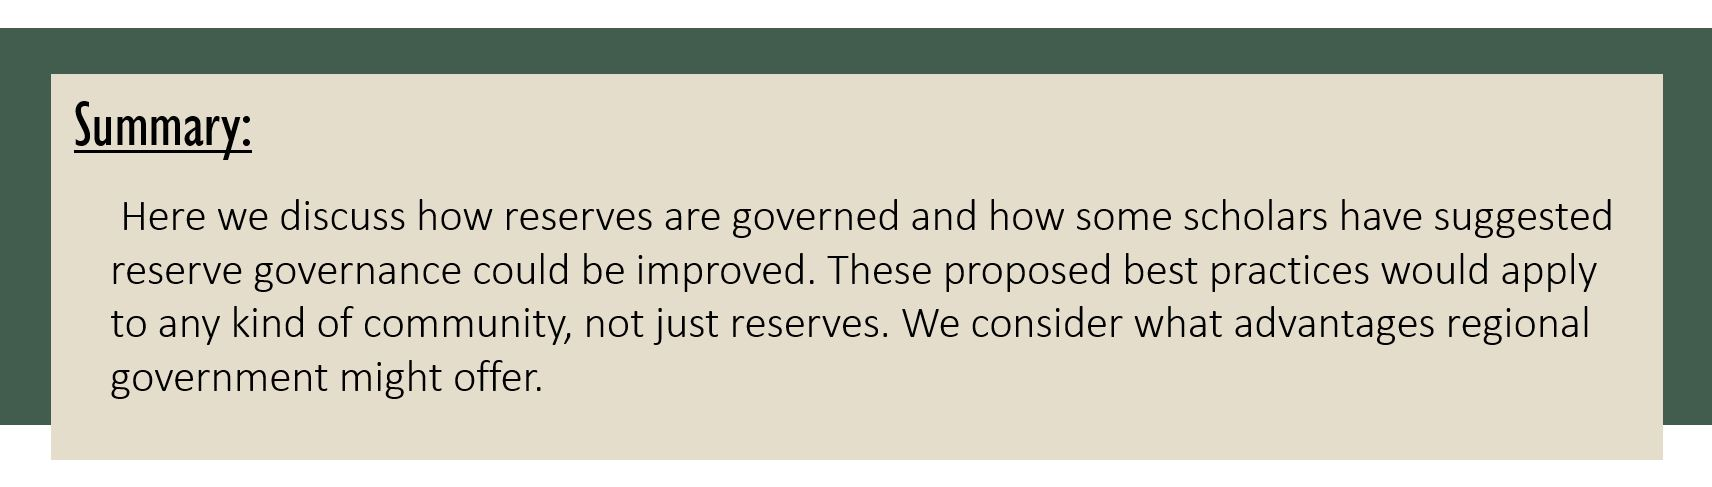 Summary: Here we discuss how reserves are governed and how some scholars have suggested reserve governance could be improved. These proposed best practices would apply to any kind of community, not just reserves. We consider what advantages regional government might offer.